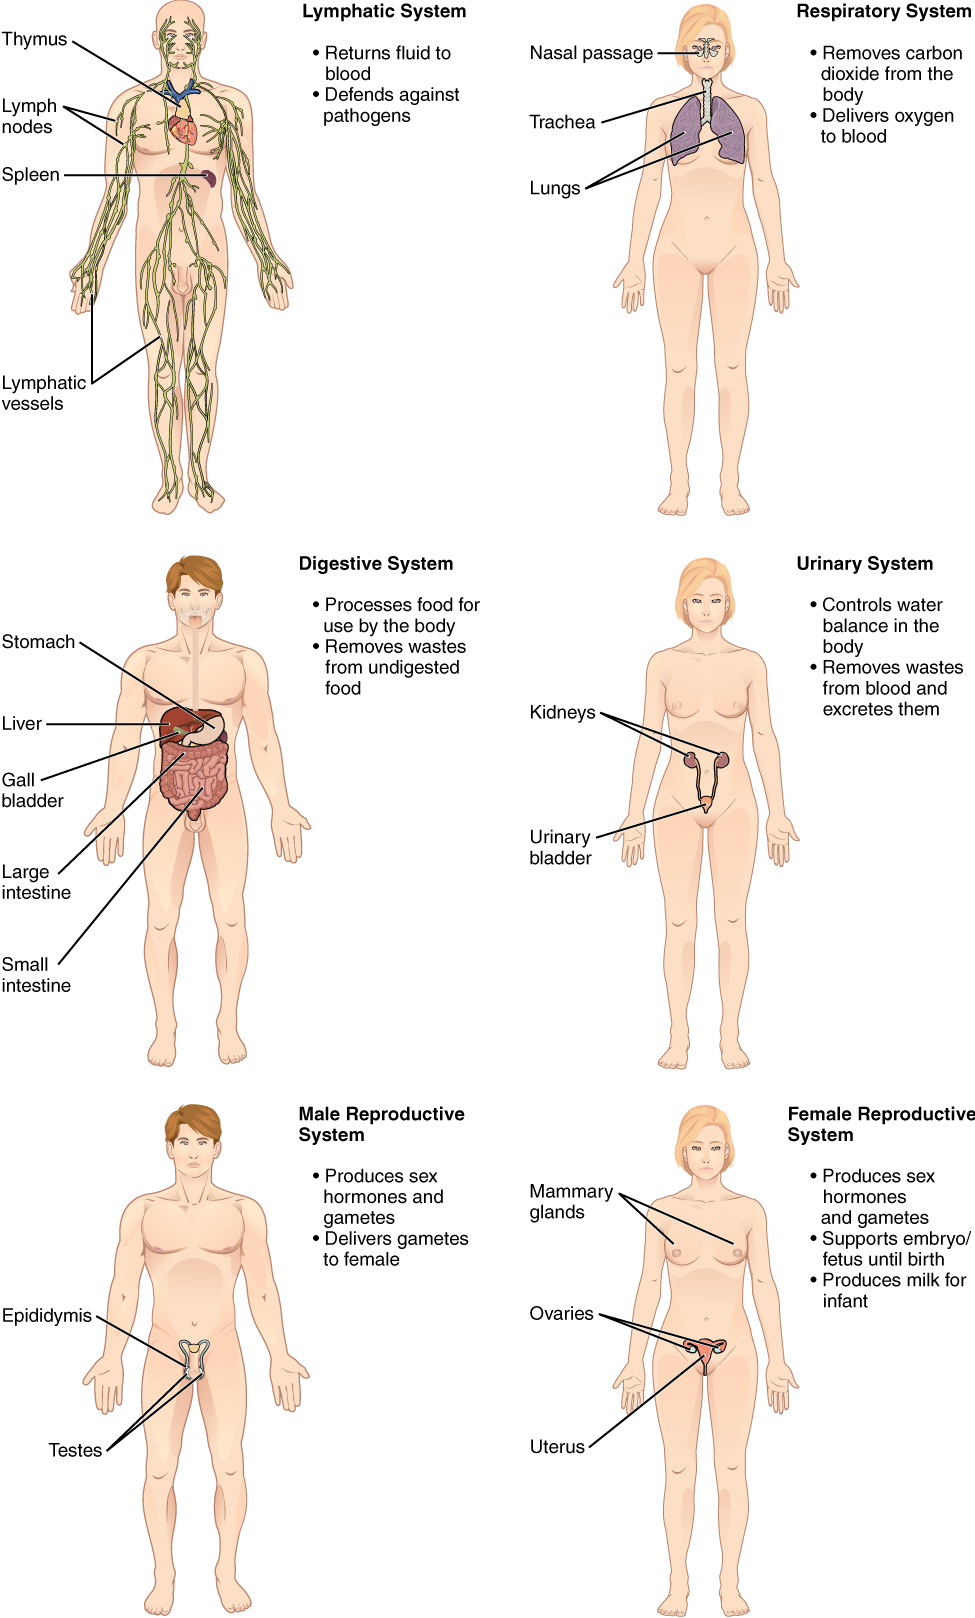 Famous Anatomy And Physiology Openstax Pictures - Human Anatomy ...